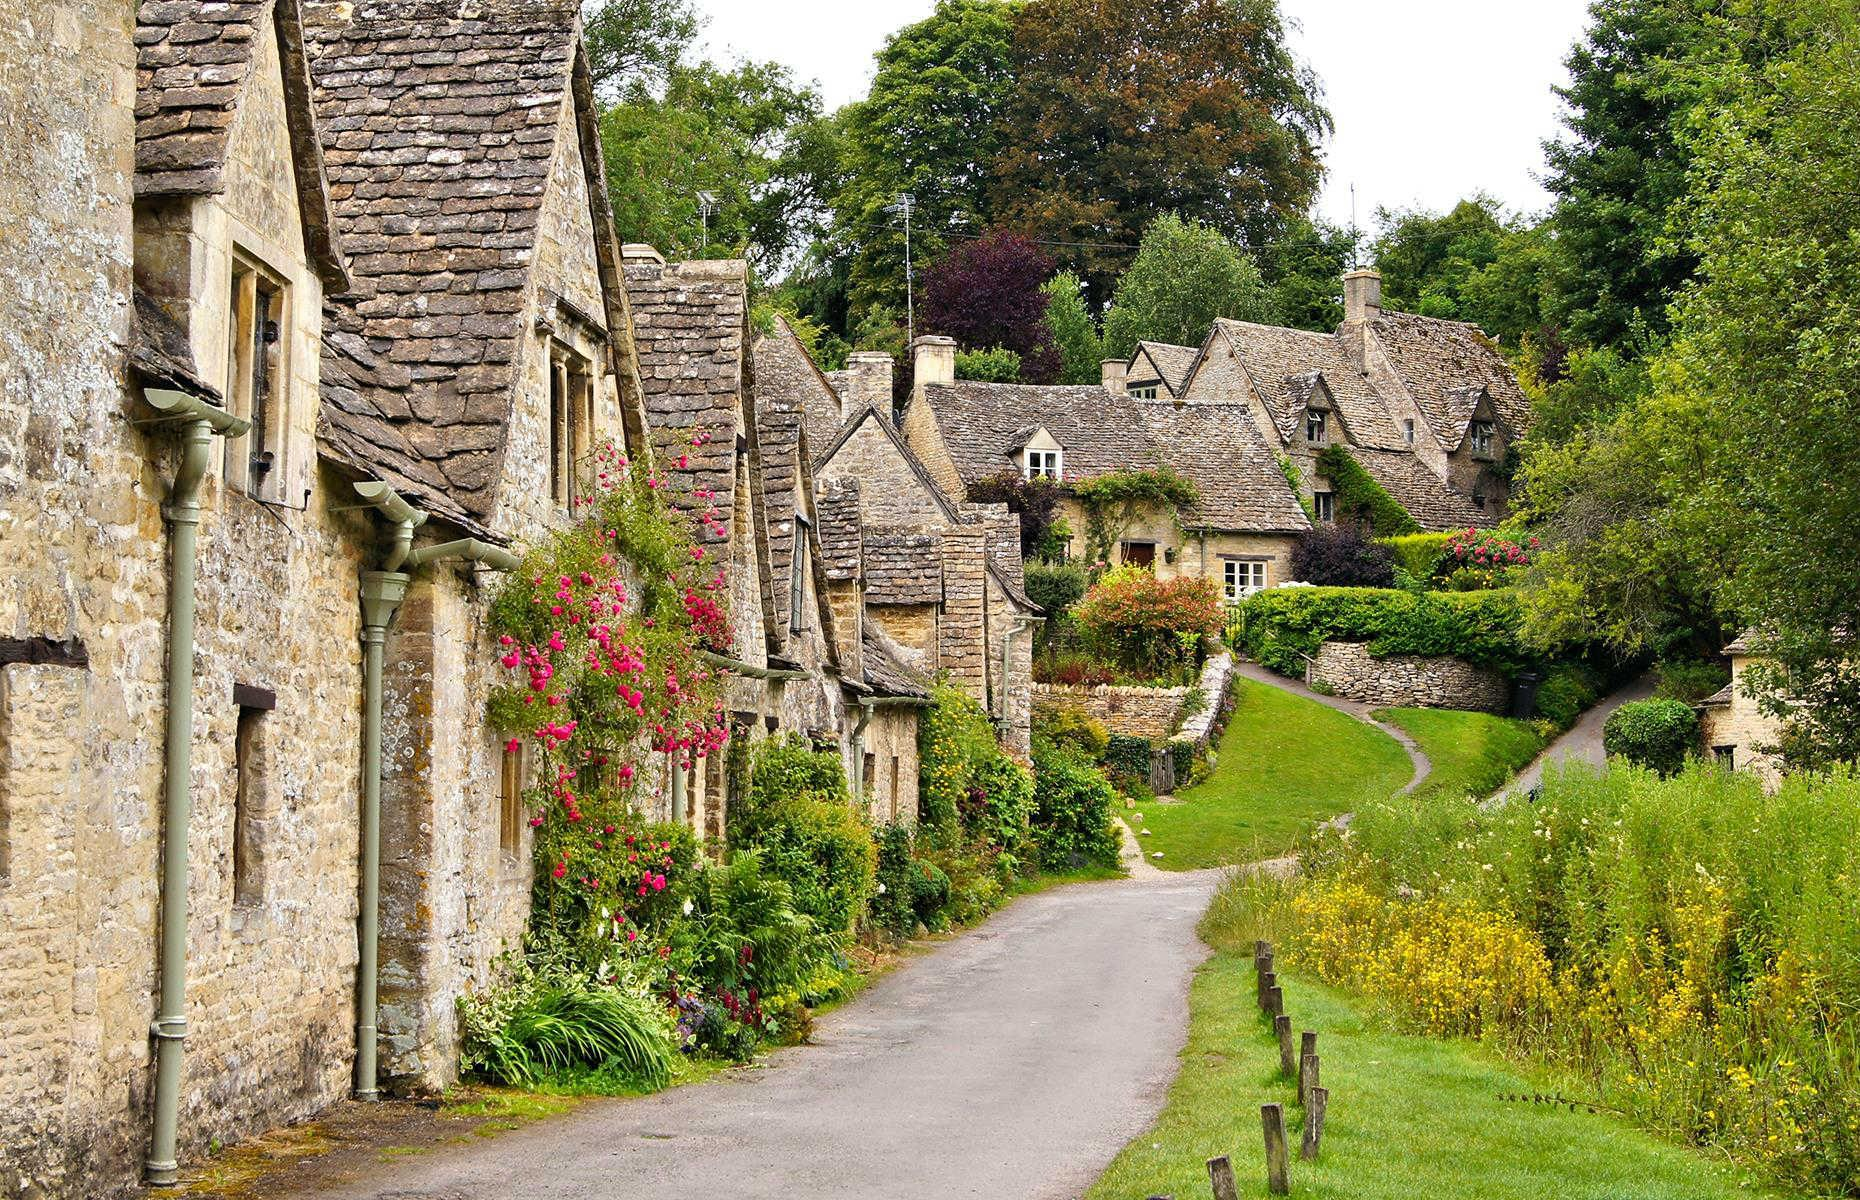 Slide 6 of 51: English writer and designer William Morris once declared Bibury the most beautiful village in the country. A hundred or so years later the sentiment certainly seems to stand. Located in the Cotswolds, an area defined by rolling hills and green meadows, Bibury is picture-perfect. Arlington Row (pictured), a line of weavers' cottages, is the prettiest sight, if not the most famous, in Bibury. Discover more of the UK's prettiest small towns and villages